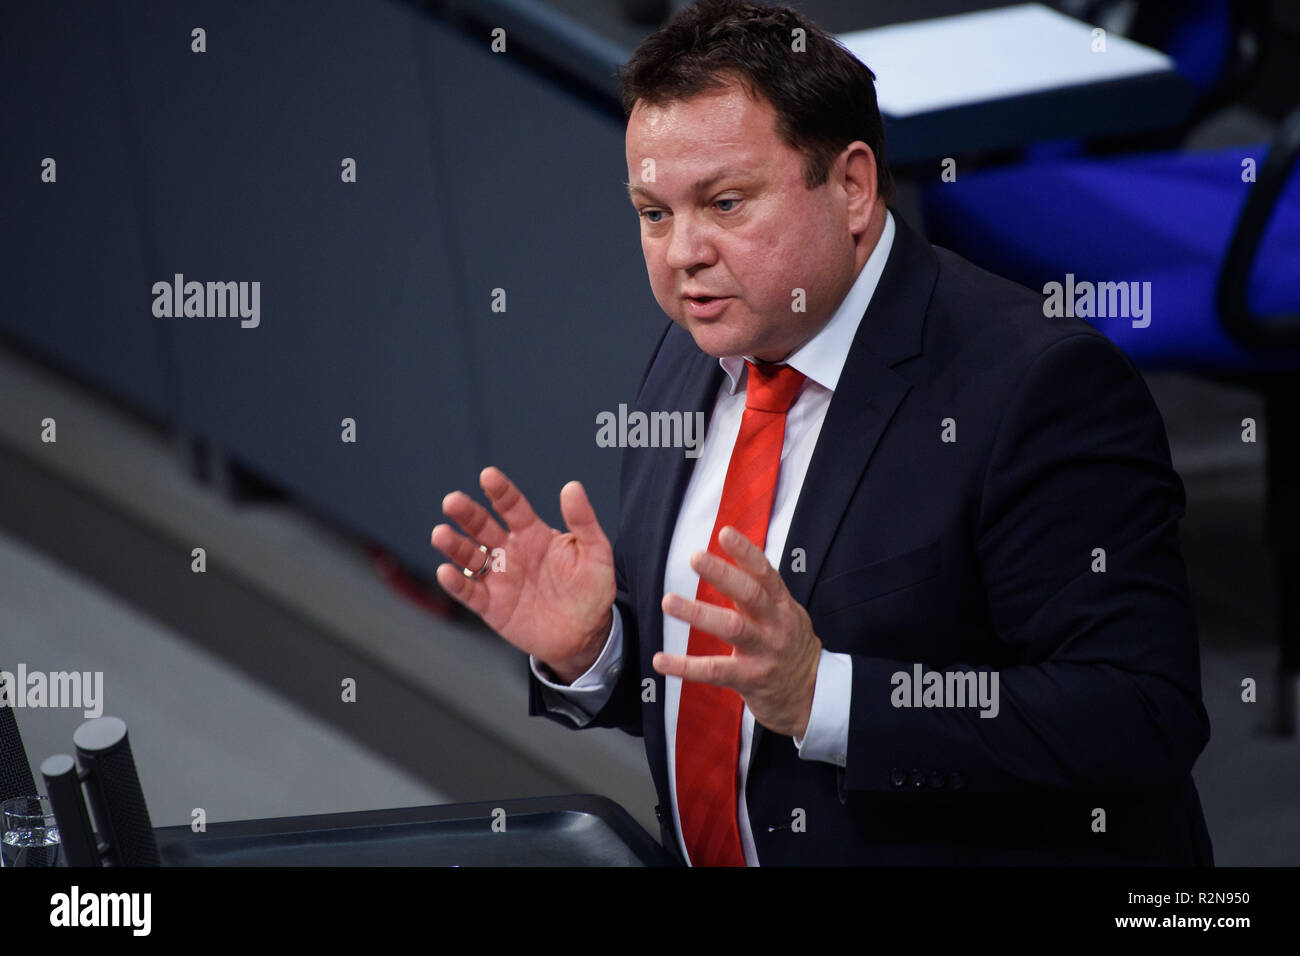 Berlin, Germany. 20th Nov, 2018. Martin Gerster (SPD), member of the Bundestag, will speak in the Bundestag at the beginning of the concluding deliberations on the federal budget 2019. Credit: Gregor Fischer/dpa/Alamy Live News - Stock Image